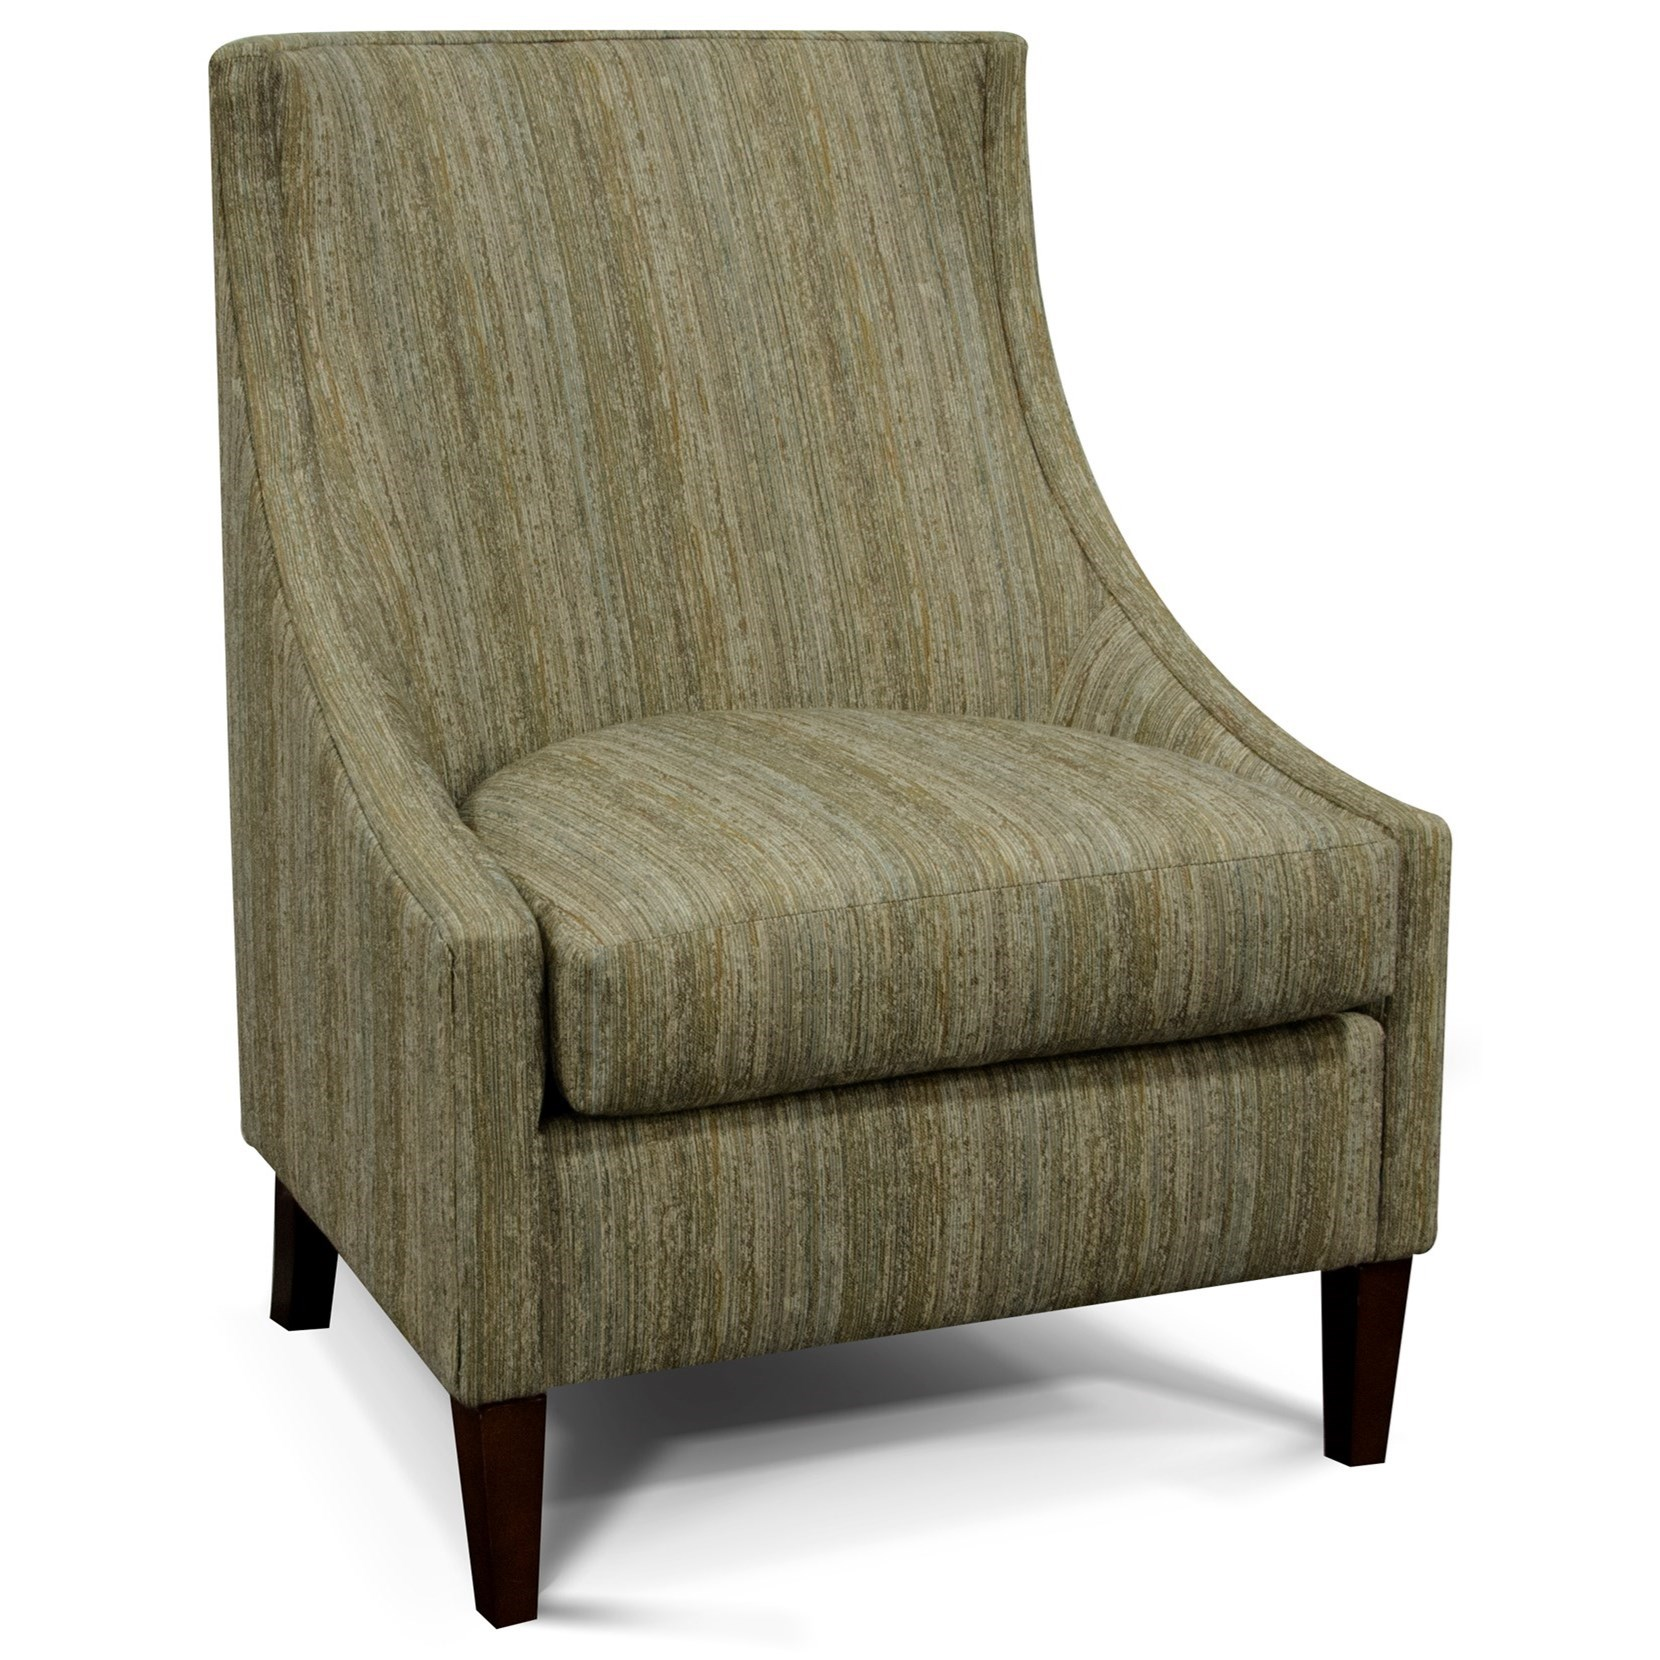 2230 Devin Chair by England at Lindy's Furniture Company